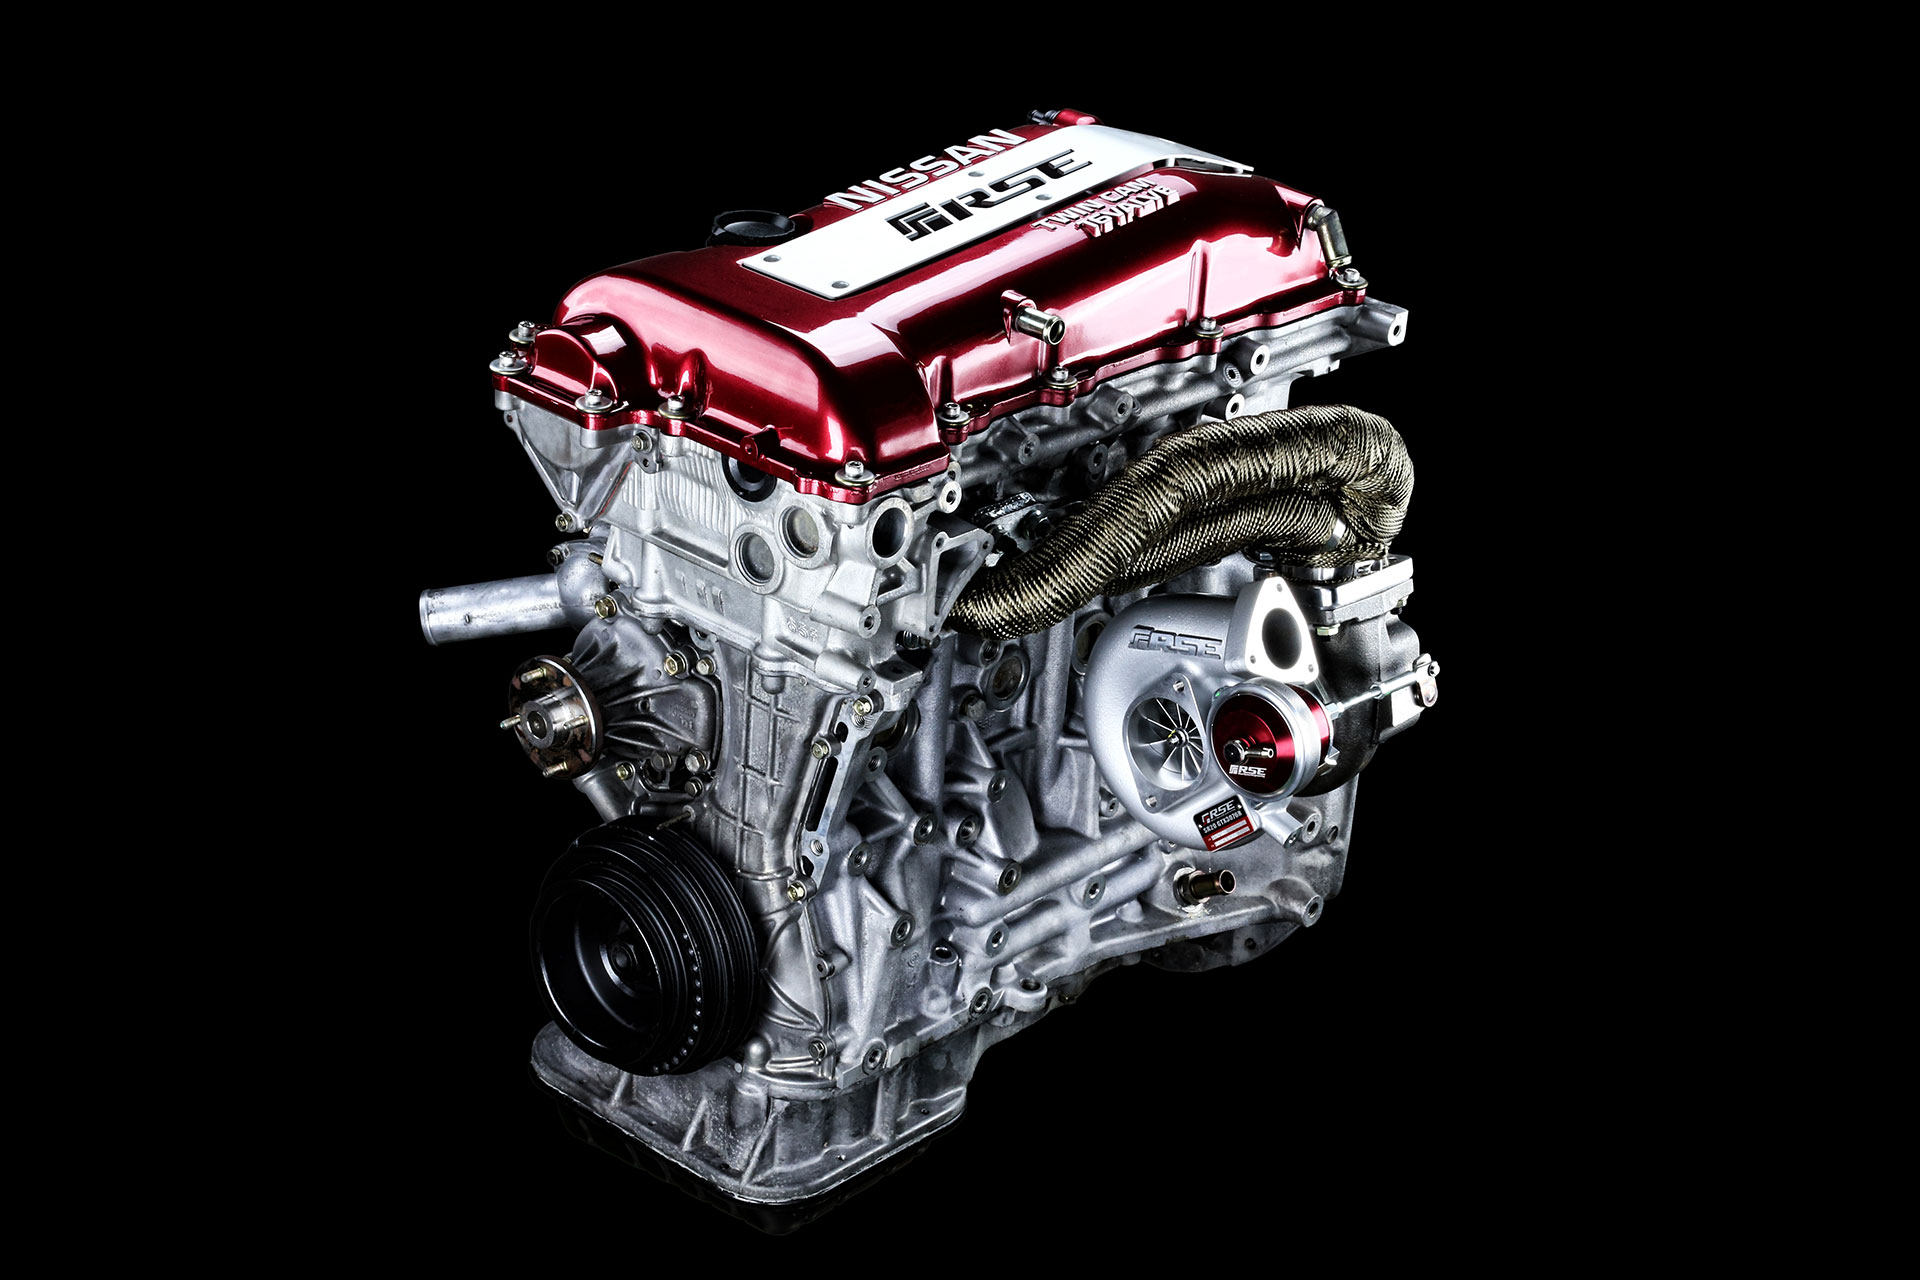 R.S.E  ターボチャージャーキット  日産  SR20DET GTX3076R  RB402A-NS08A